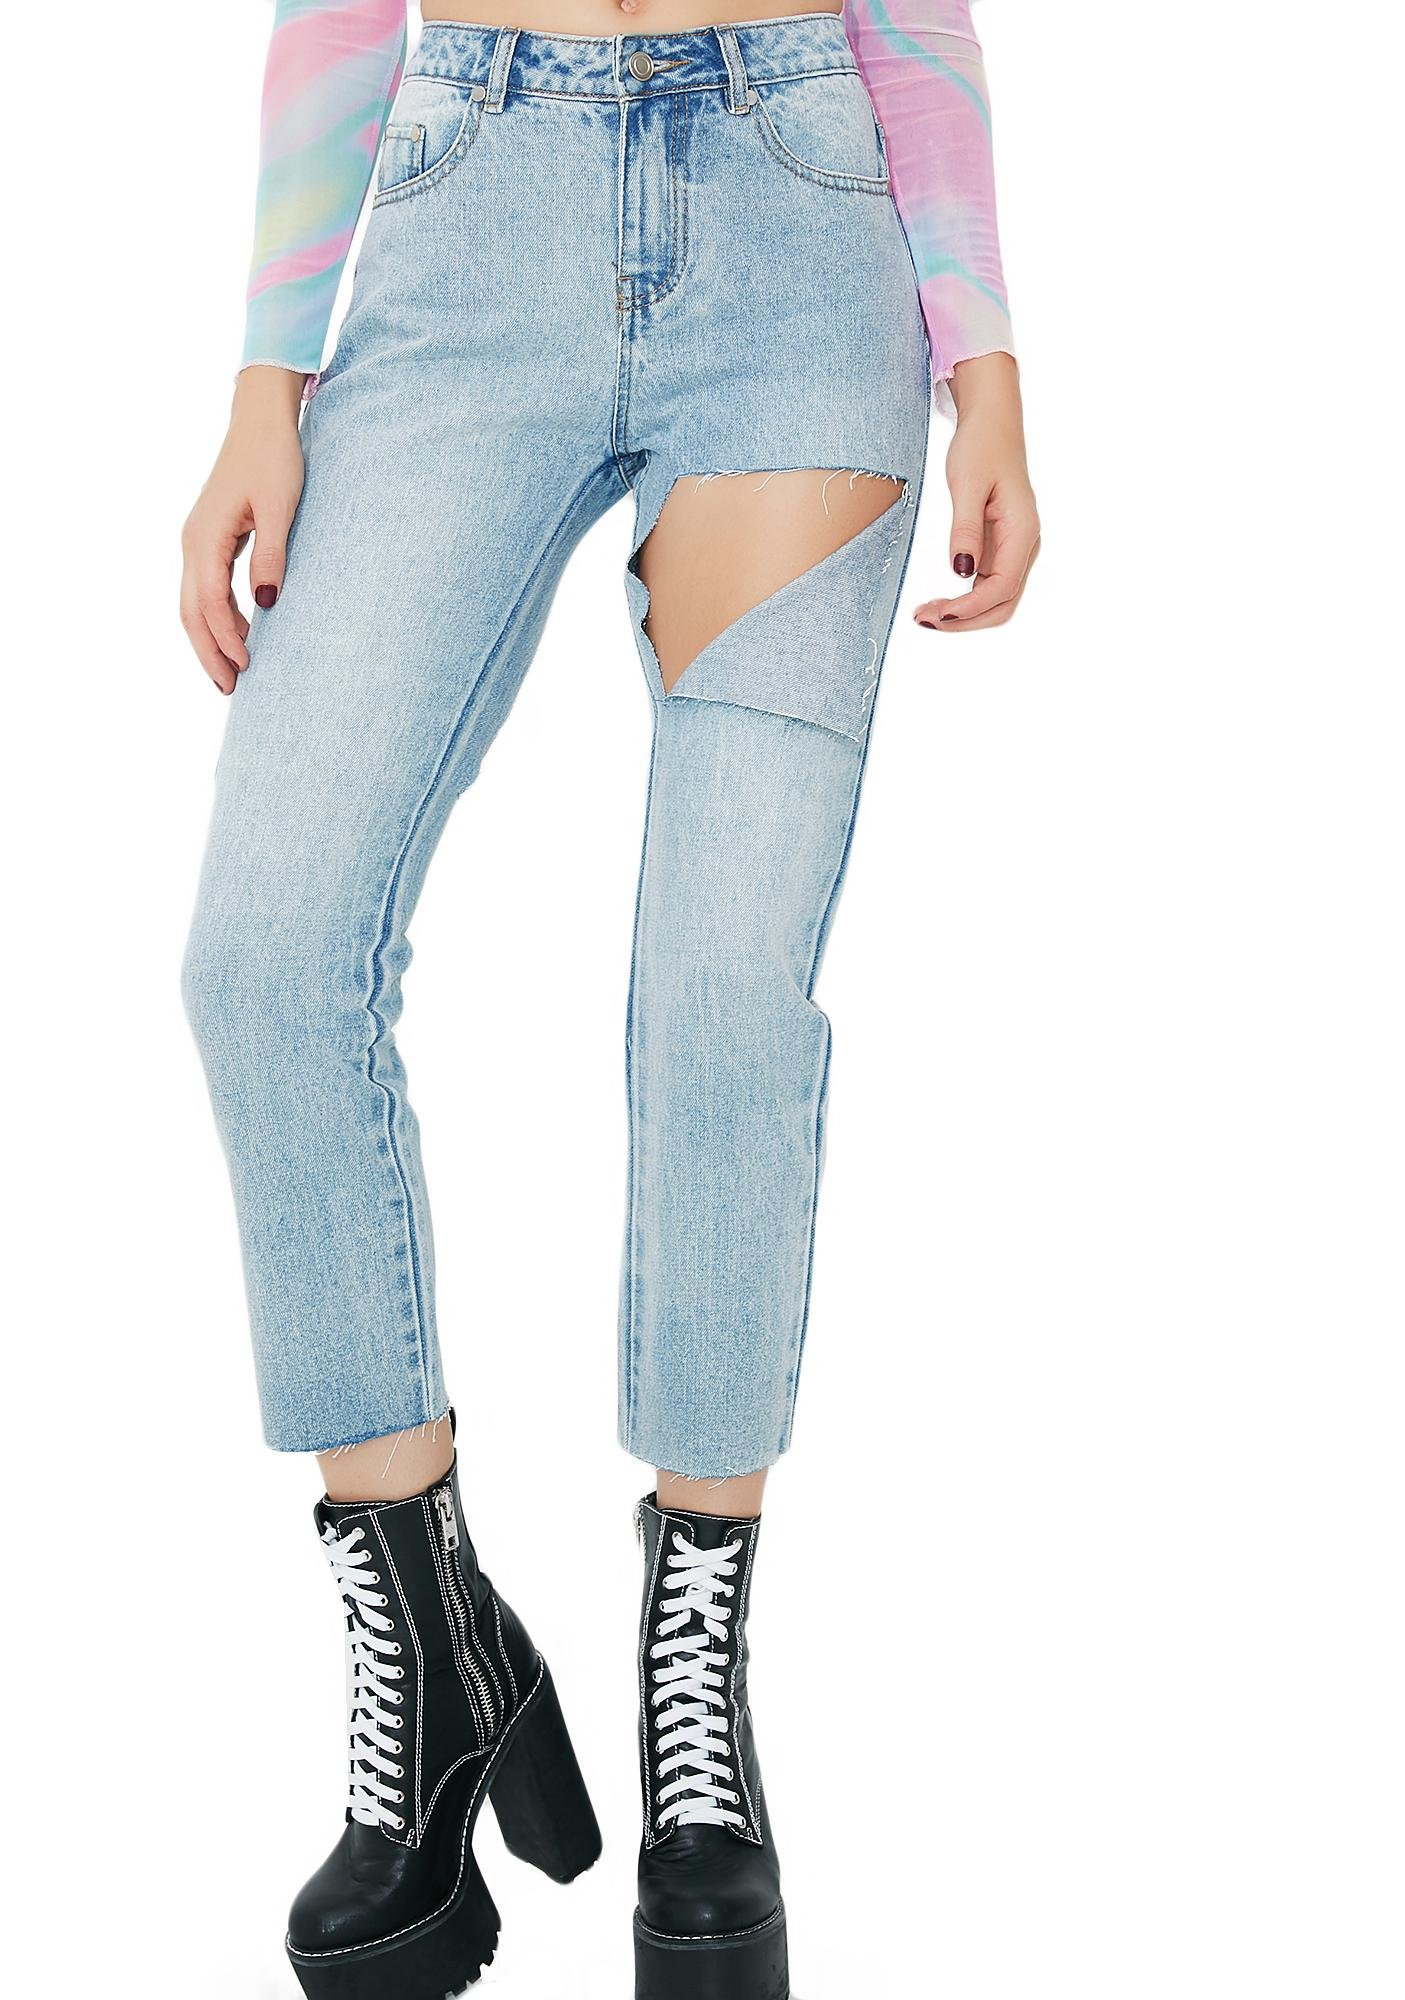 Just For Kicks Ripped Jeans